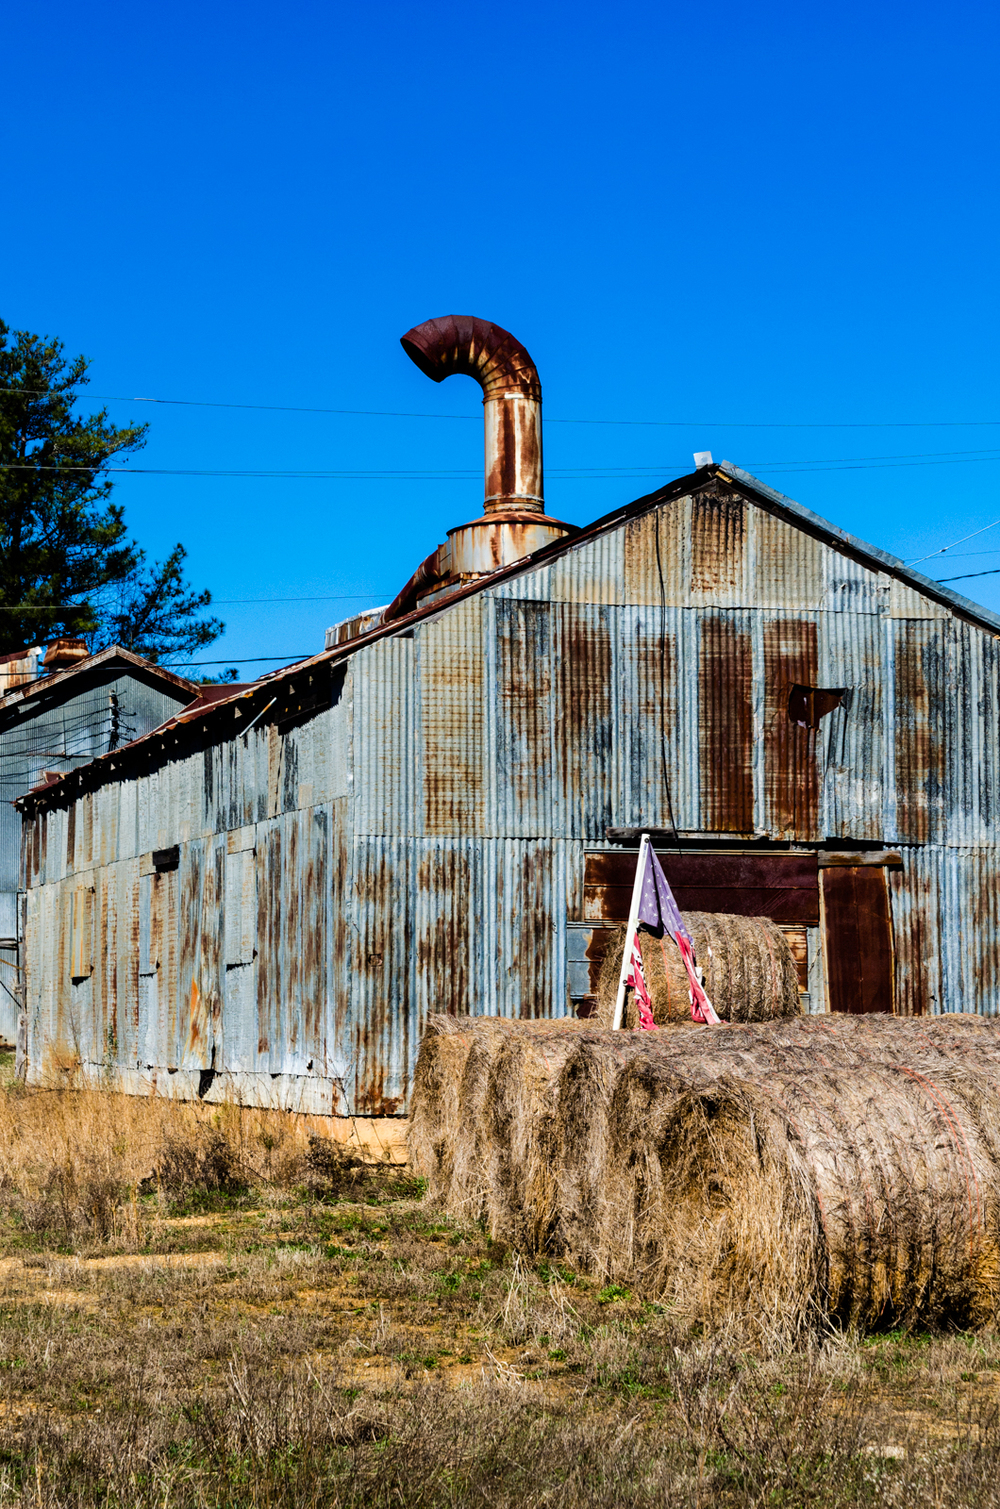 Project 365: #58 - Esco Feed Mill